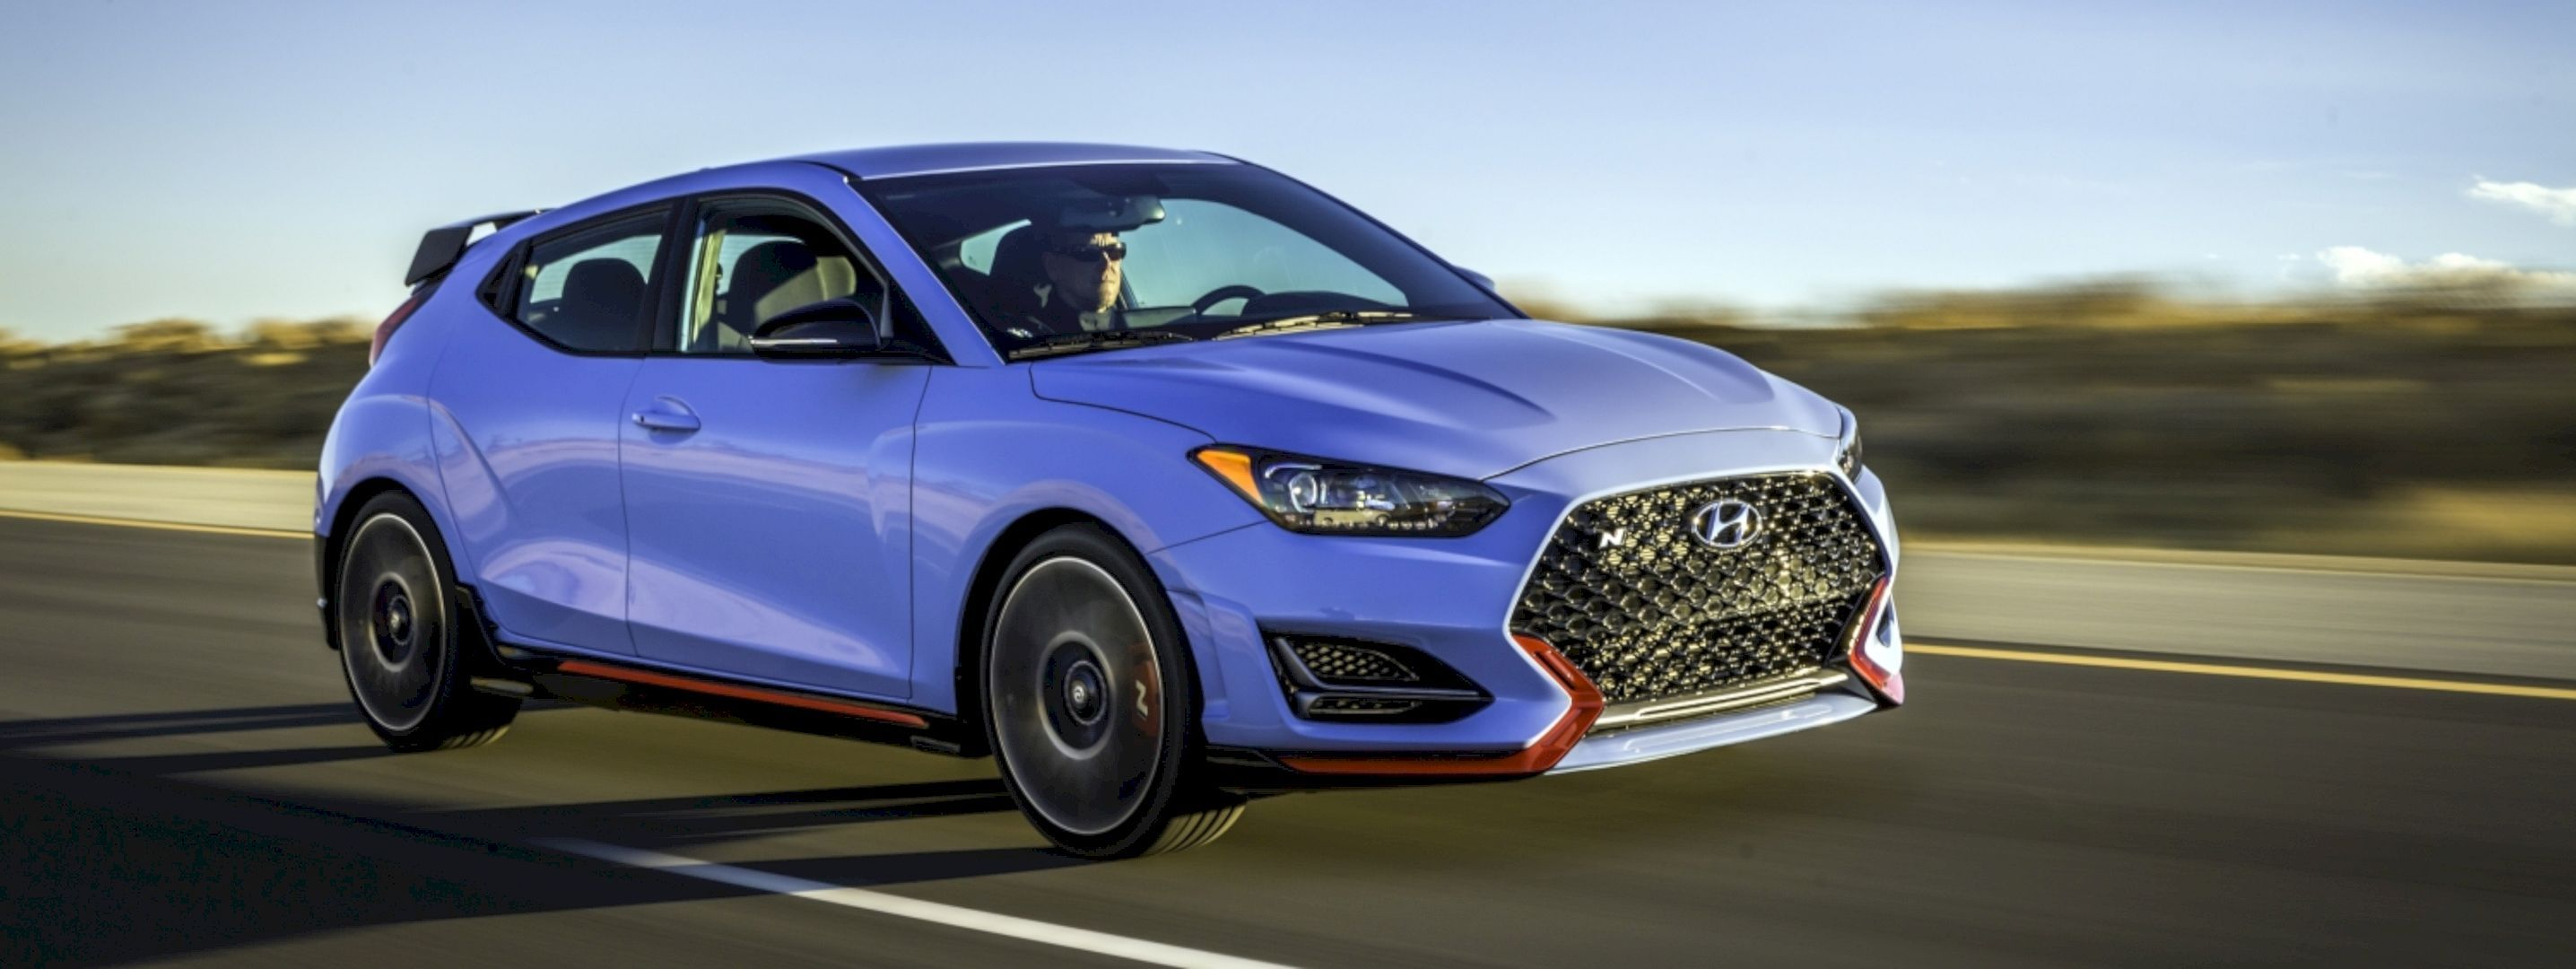 2019 Hyundai Veloster N Ready to Dominate Hot Hatches